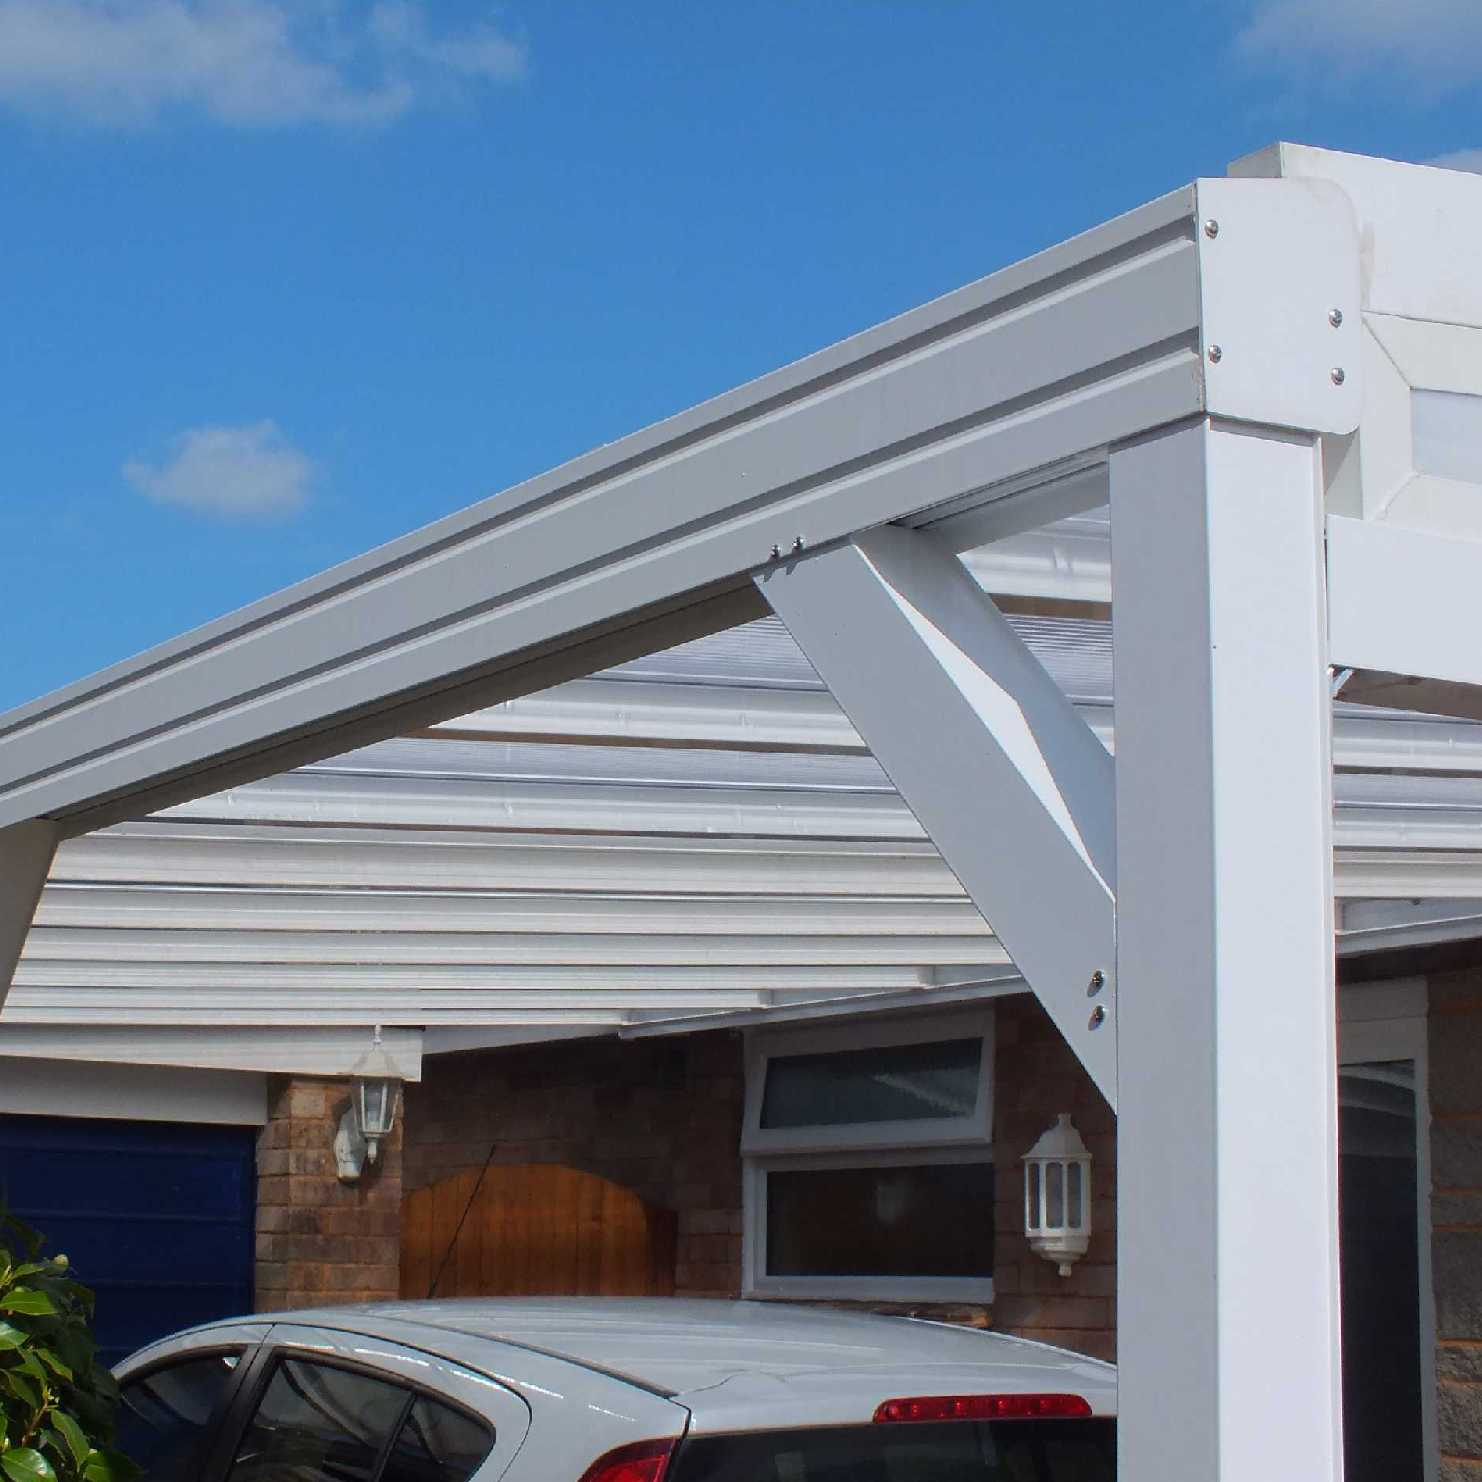 Great deals on Omega Smart Lean-To Canopy with 16mm Polycarbonate Glazing - 9.2m (W) x 3.5m (P), (5) Supporting Posts